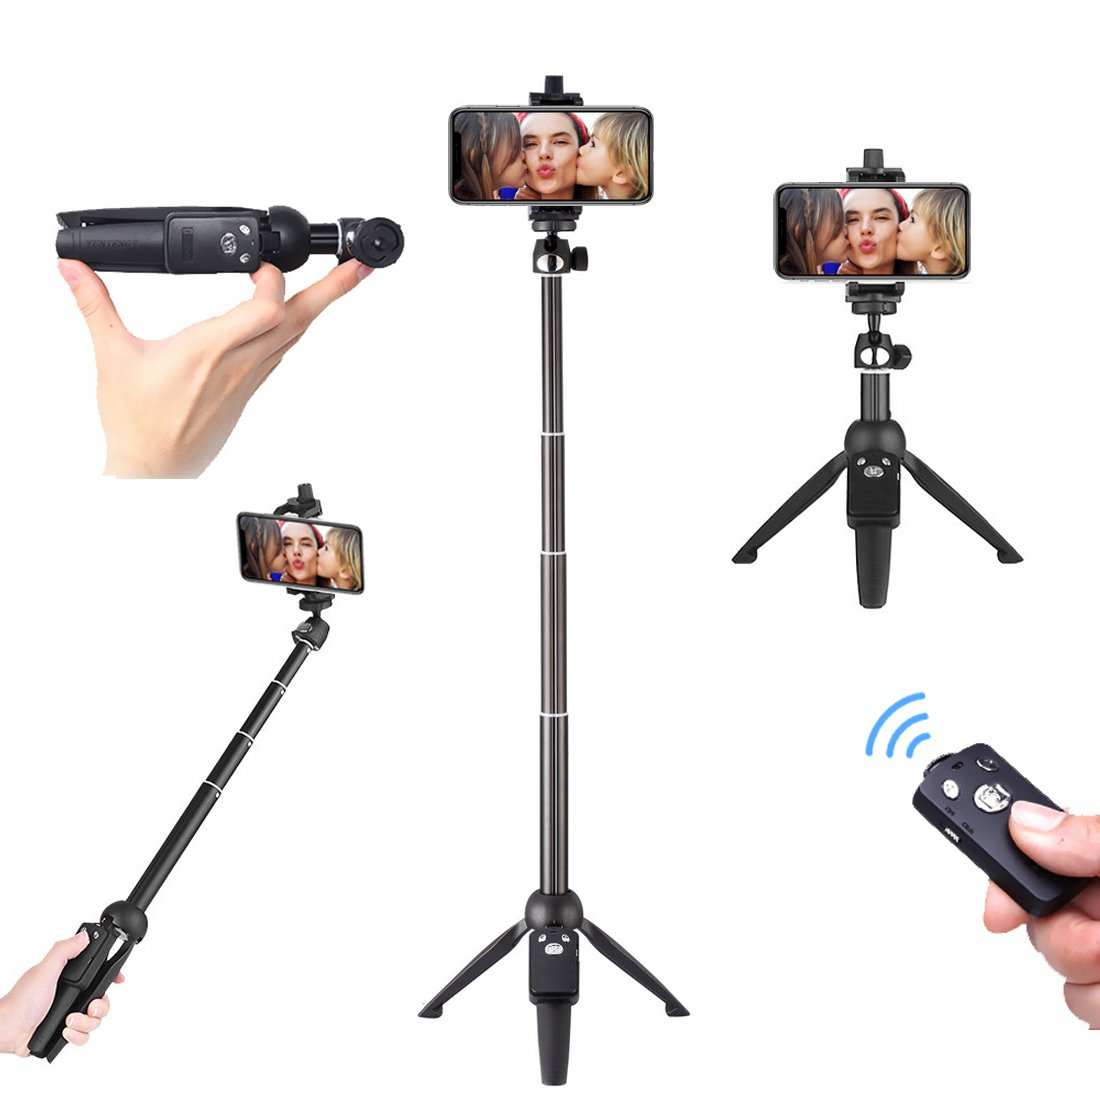 40 Inches Stable Cell Mobile Phone Selfie Tripod Stick, Photography Tripod Stand With Aluminum Alloy Telescope Rod Wireless Remote Control For Apple iPhone/Samsung/Sony/Google/LG/Motorola/IOS/Android